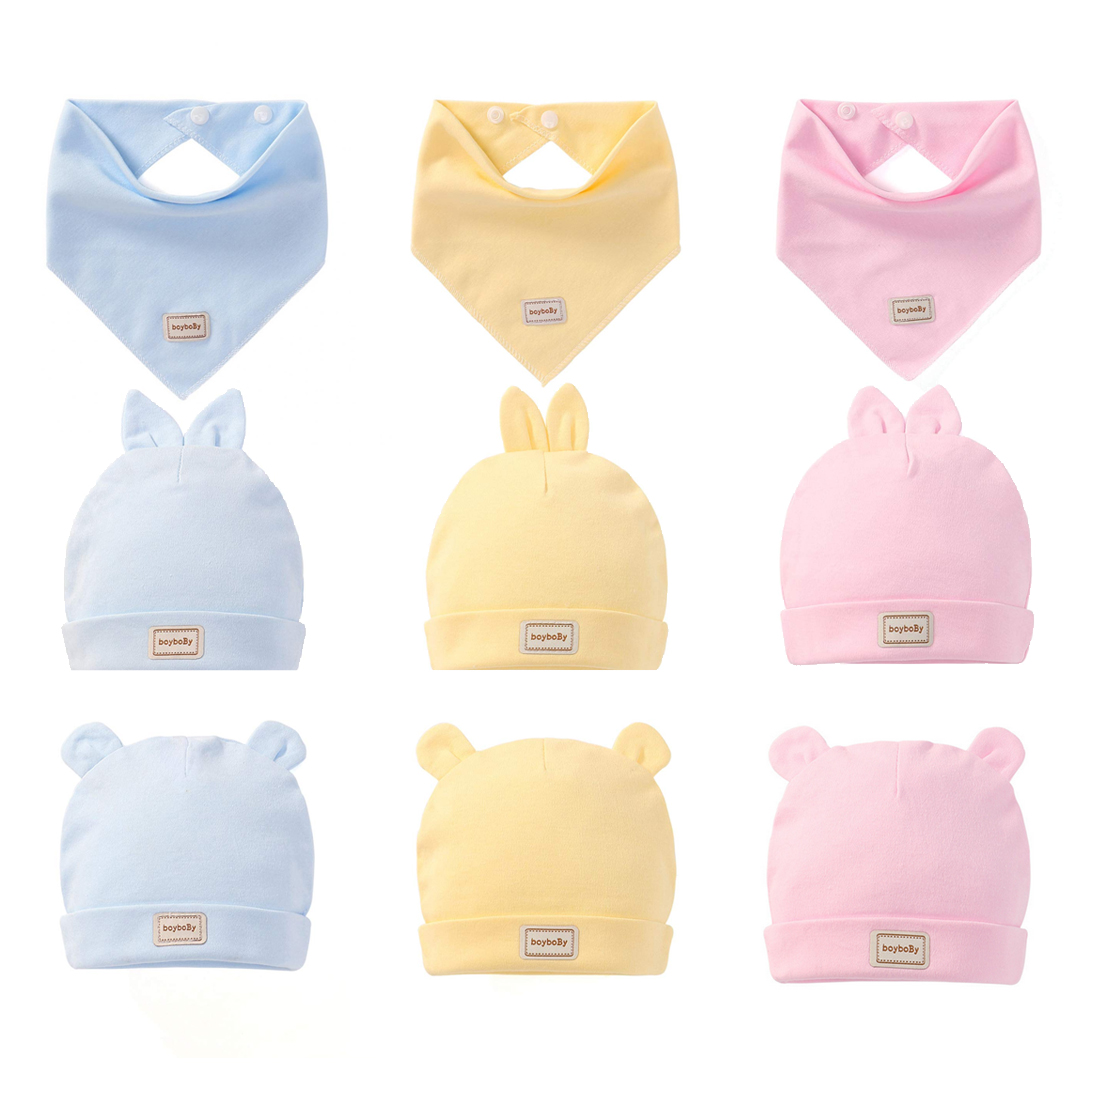 Newborn Infant Elastic Headscarf Double Layer Cotton Baby Caps Hats With Baby Bibs Set Pink Yellow And Sky Blue in Hats Caps from Mother Kids